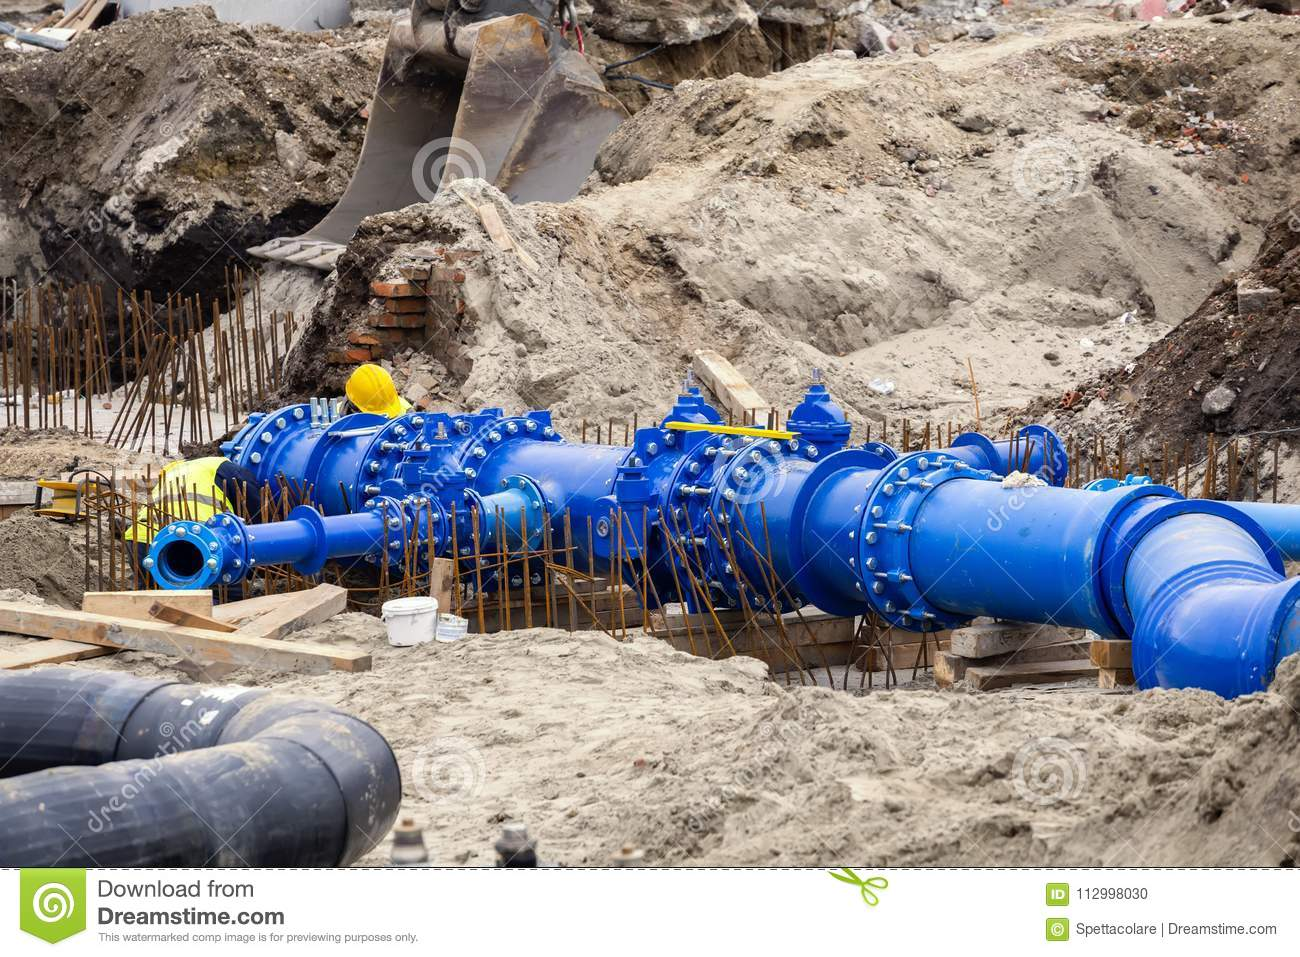 Madisontwp org, Water supply pipeline contractors